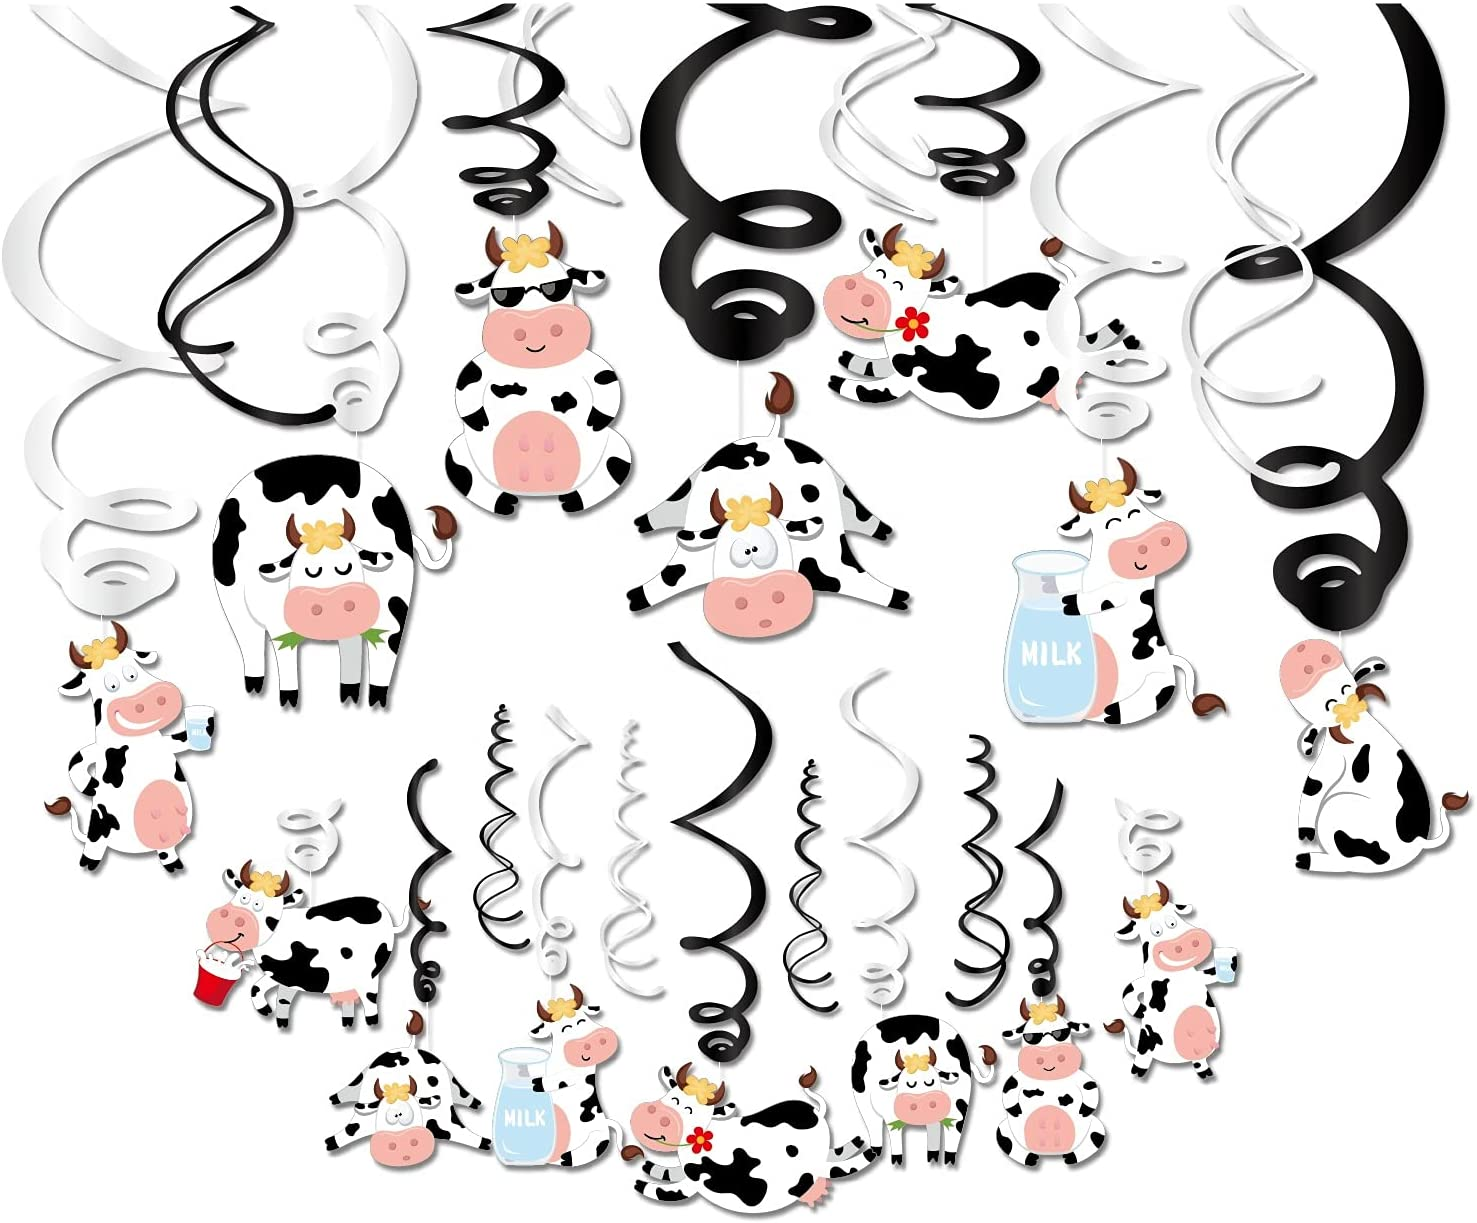 Kristin Paradise 30Ct Cow Hanging Swirl Decorations, Farm Animals Party Supplies, Cow Print Birthday Theme Decor for Boy Girl Baby Shower, Moo 1st Bday Favors Idea